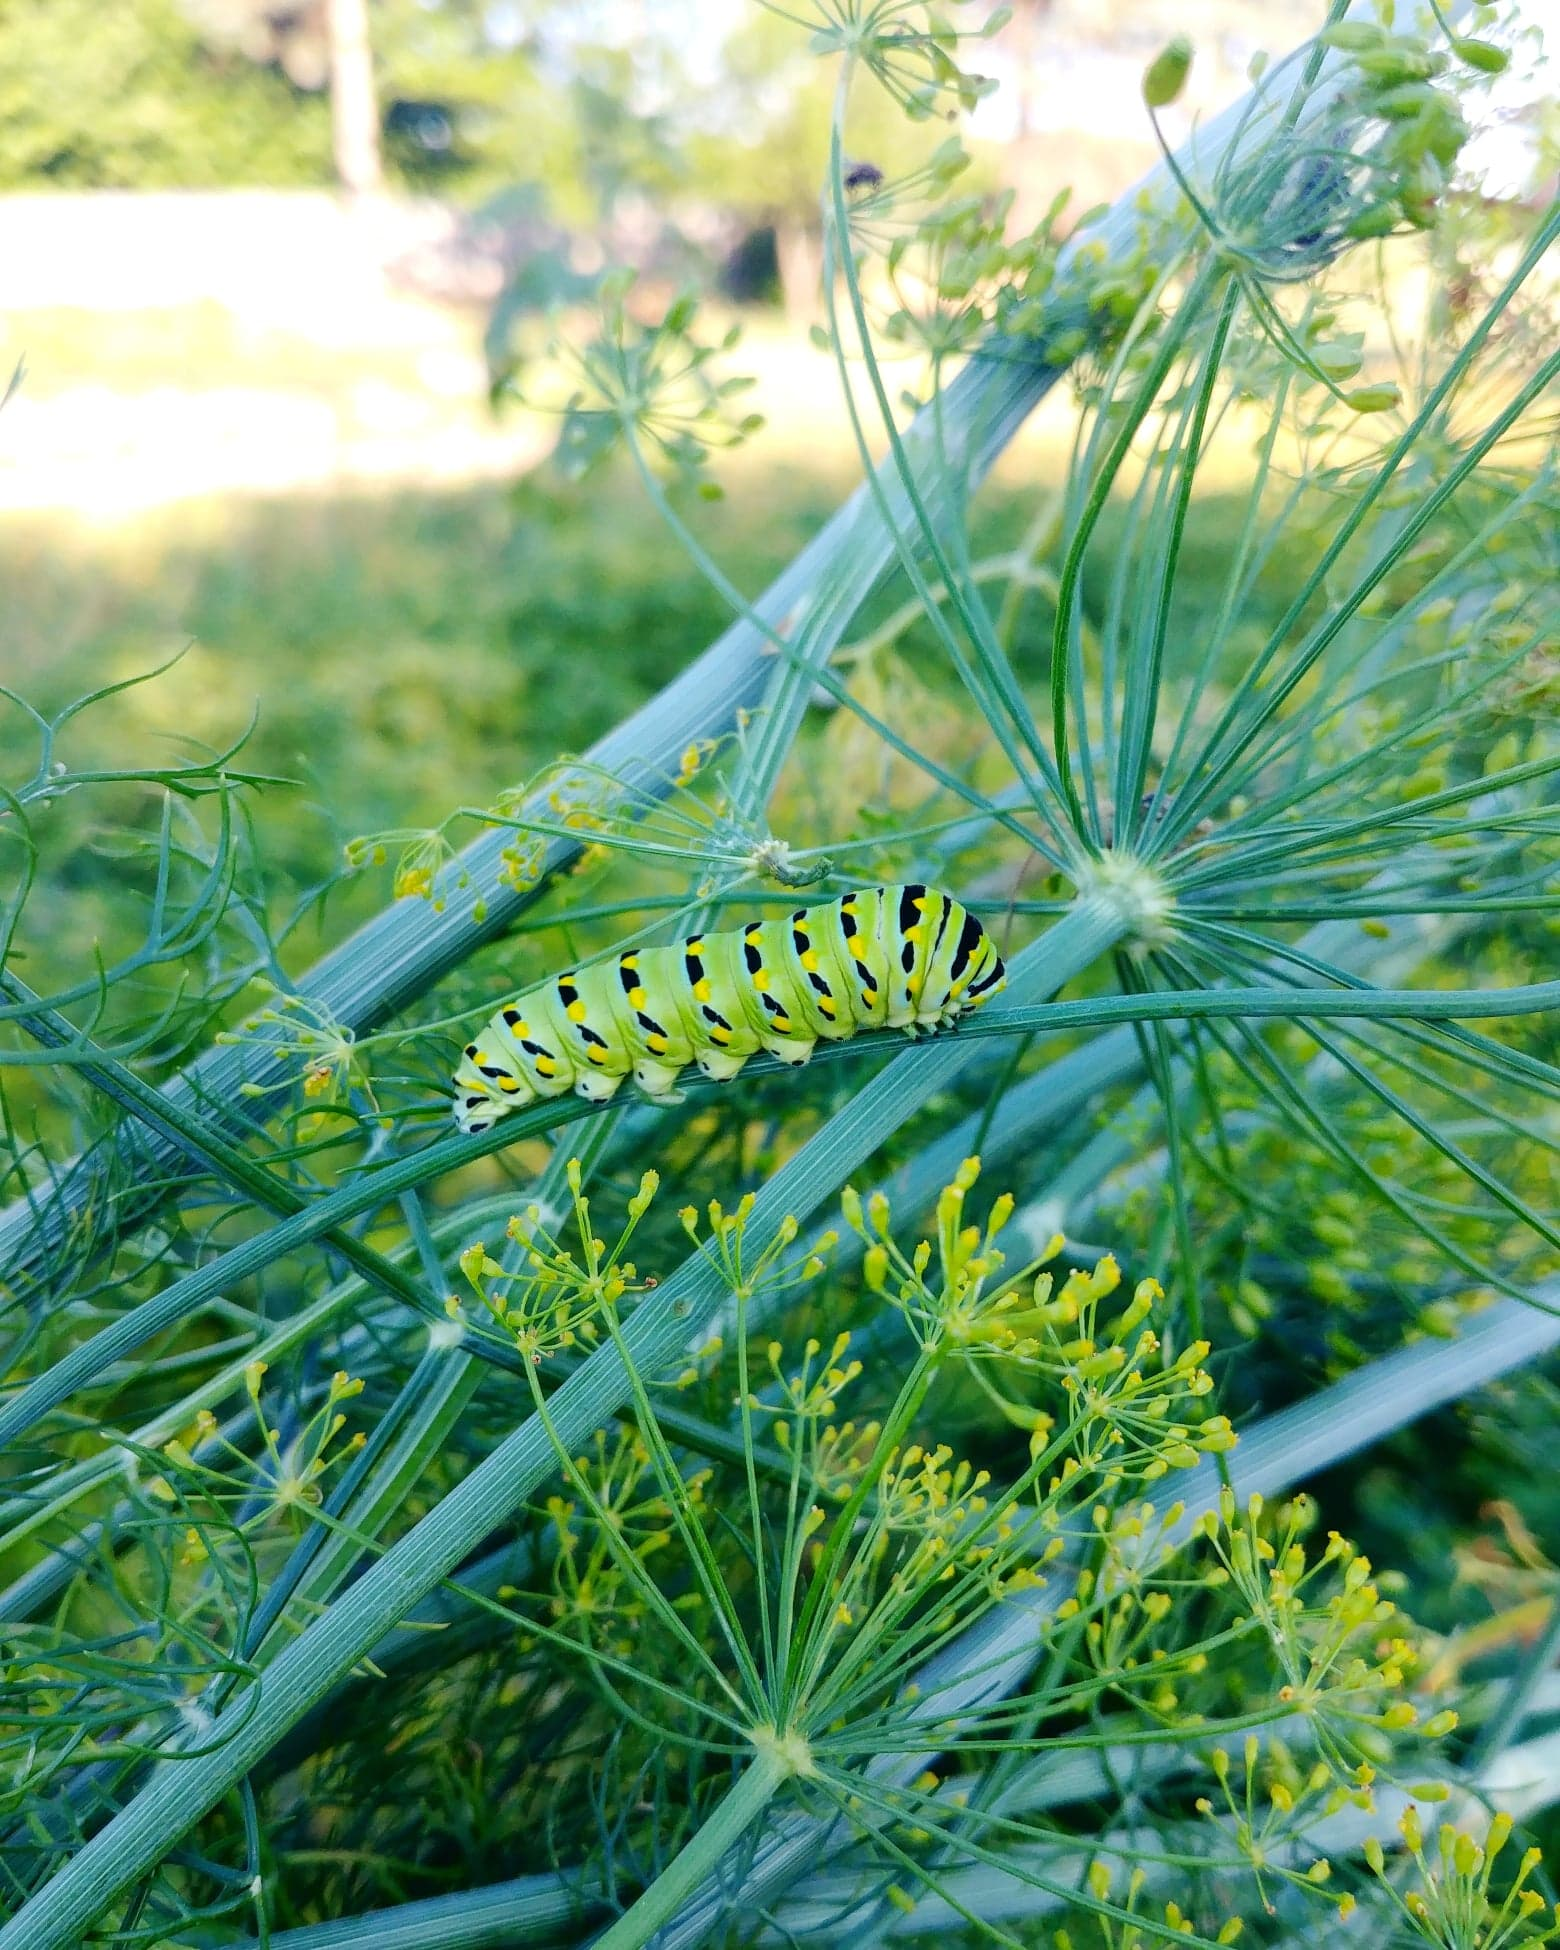 The swallowtail caterpillar on a dill plant.